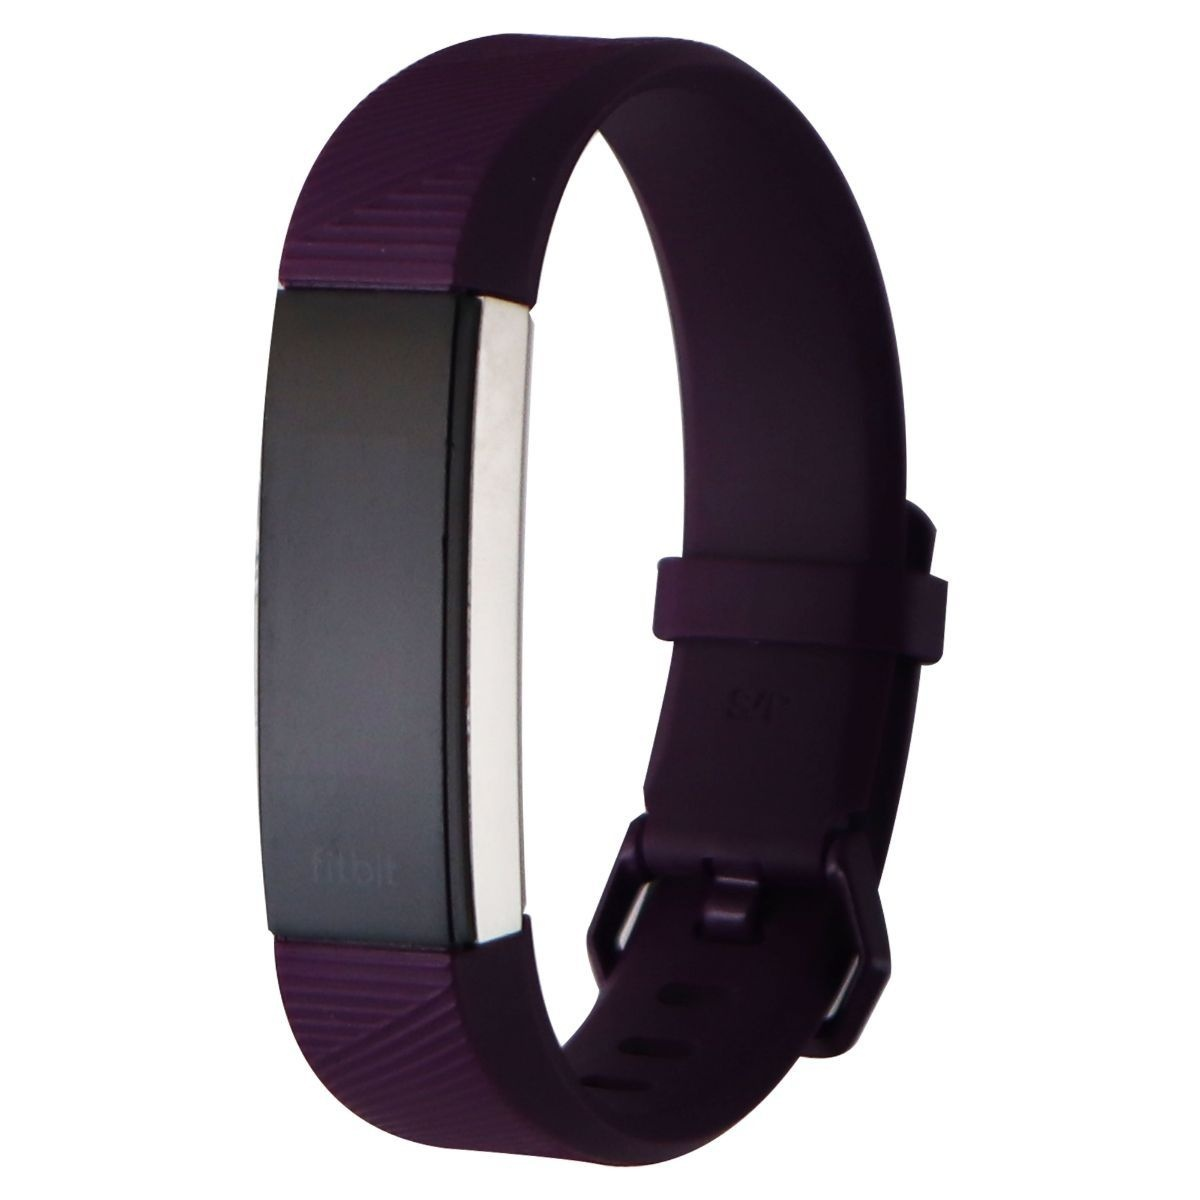 Fitbit Alta HR Fitness Activity Wristband (FB408) - Large Band - Plum (Purple)